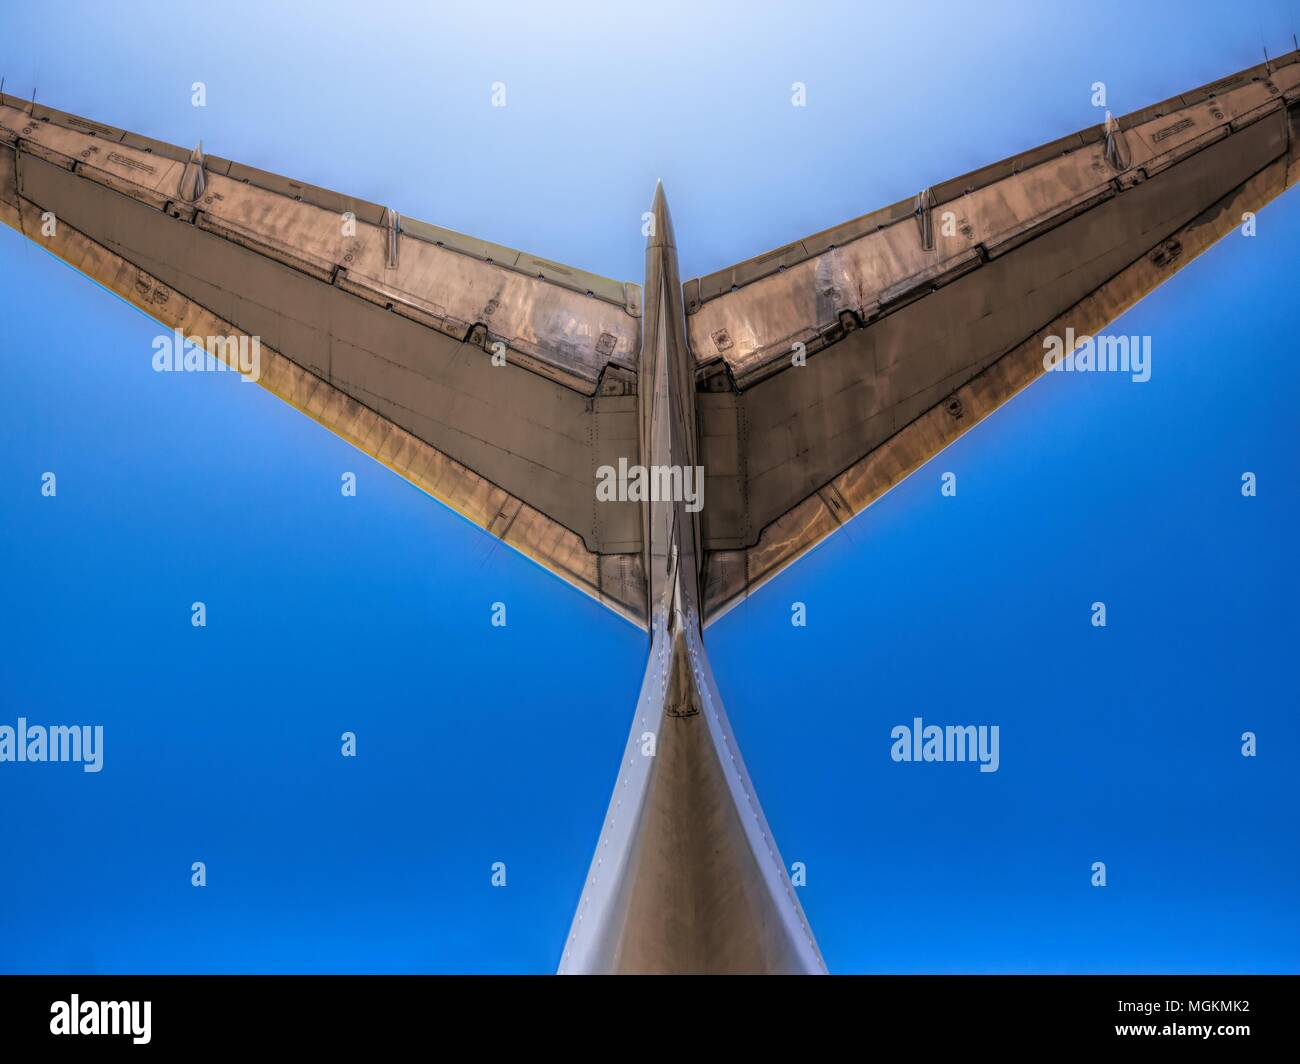 Tail Wing Of Jet Airliner - Stock Image